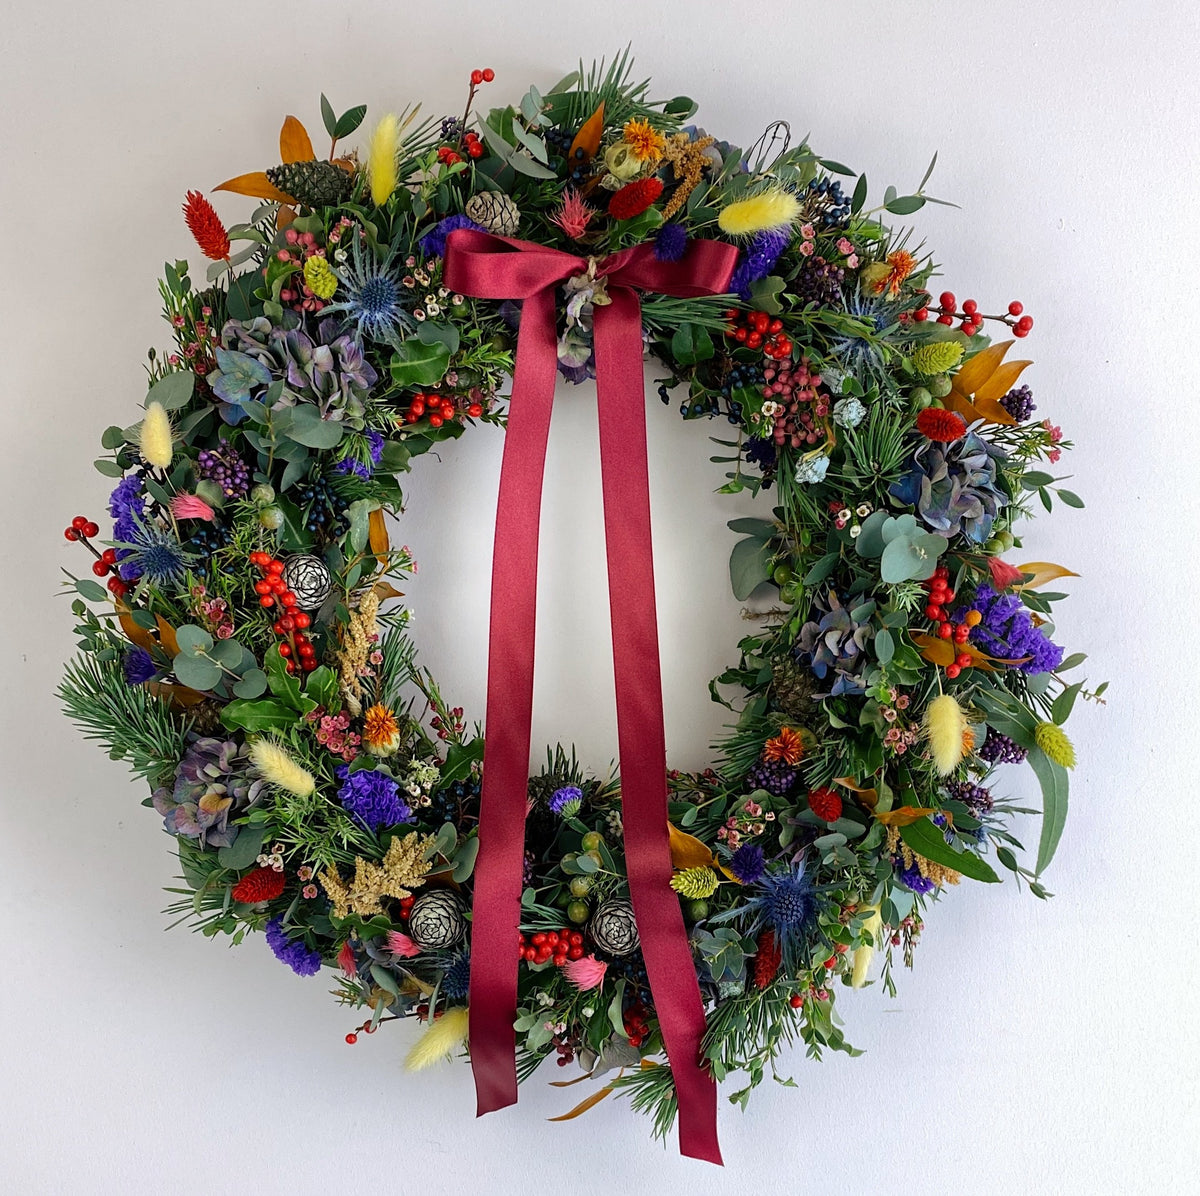 Get your wreath on! Introducing our new Christmas wreaths